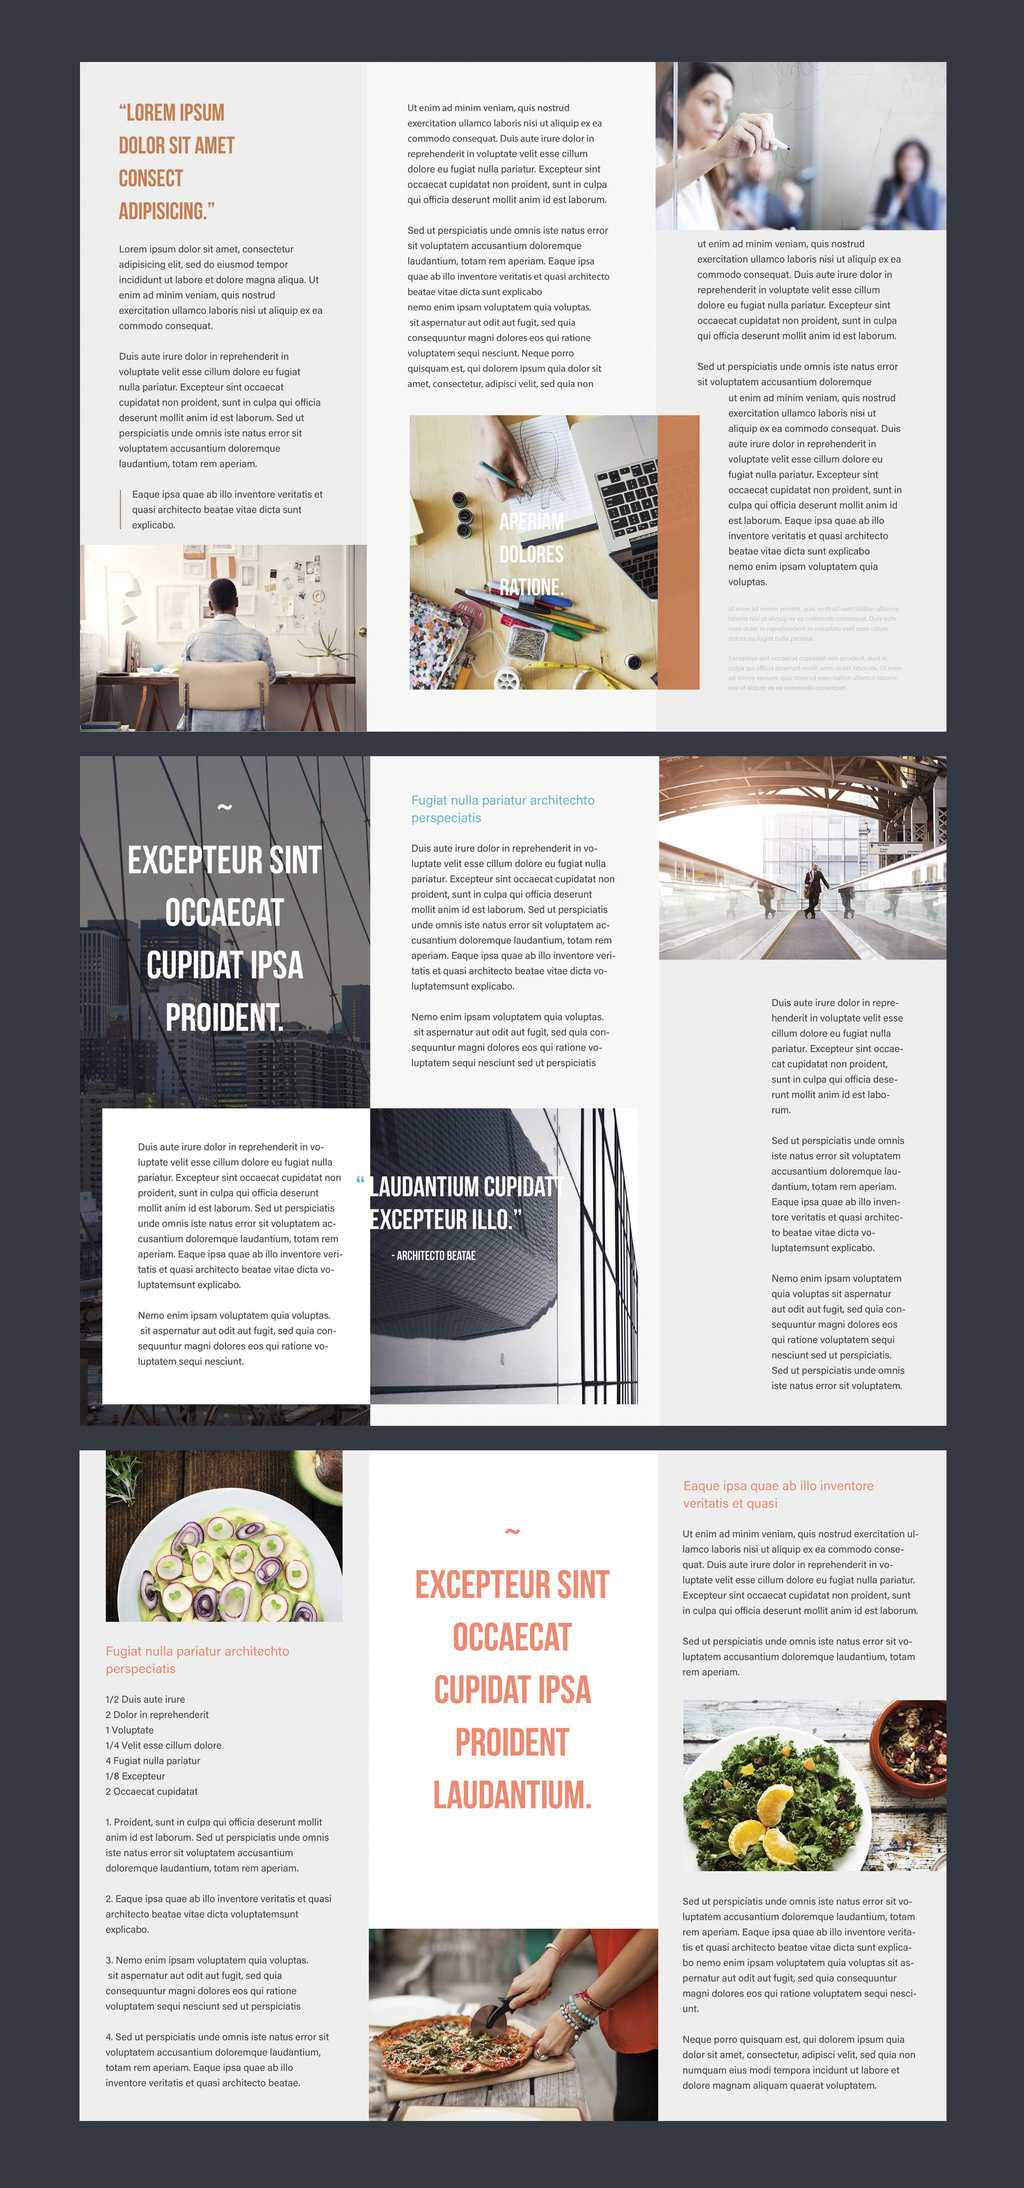 Professional Brochure Templates | Adobe Blog Pertaining To Adobe Illustrator Brochure Templates Free Download